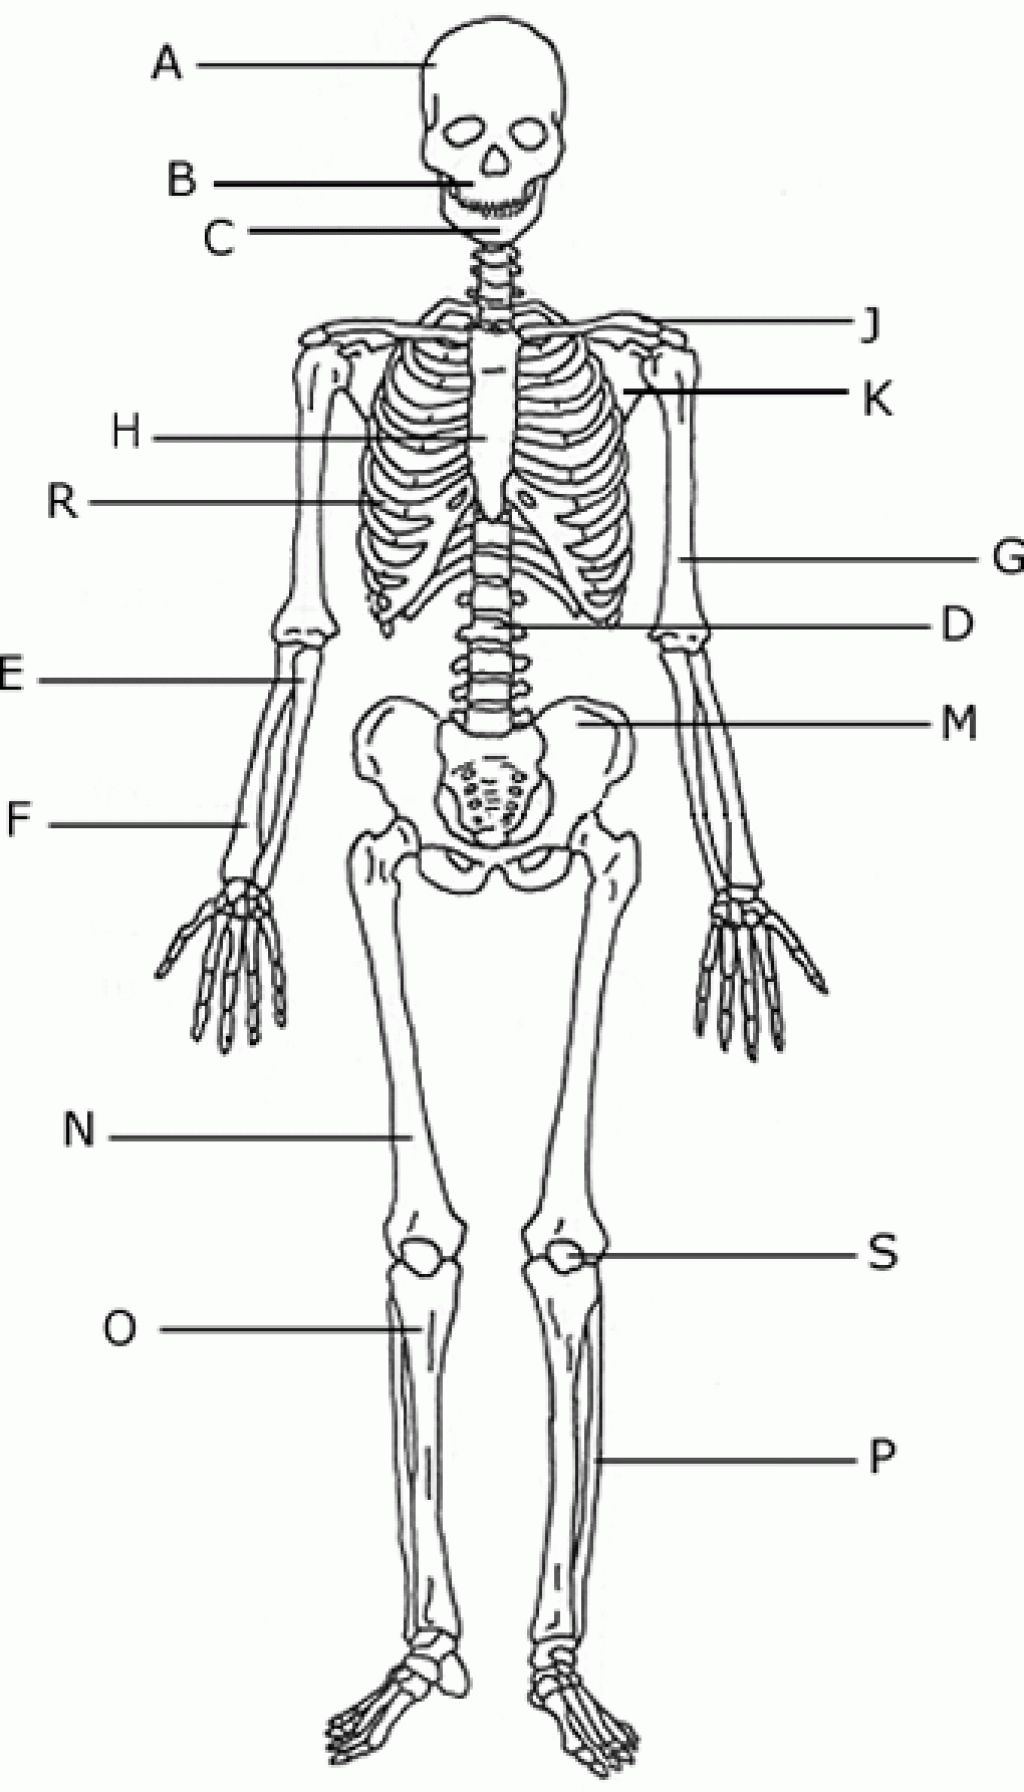 small resolution of unlabeled diagram of the human skeleton unlabeled diagram of the human skeleton system skeletal anatomy